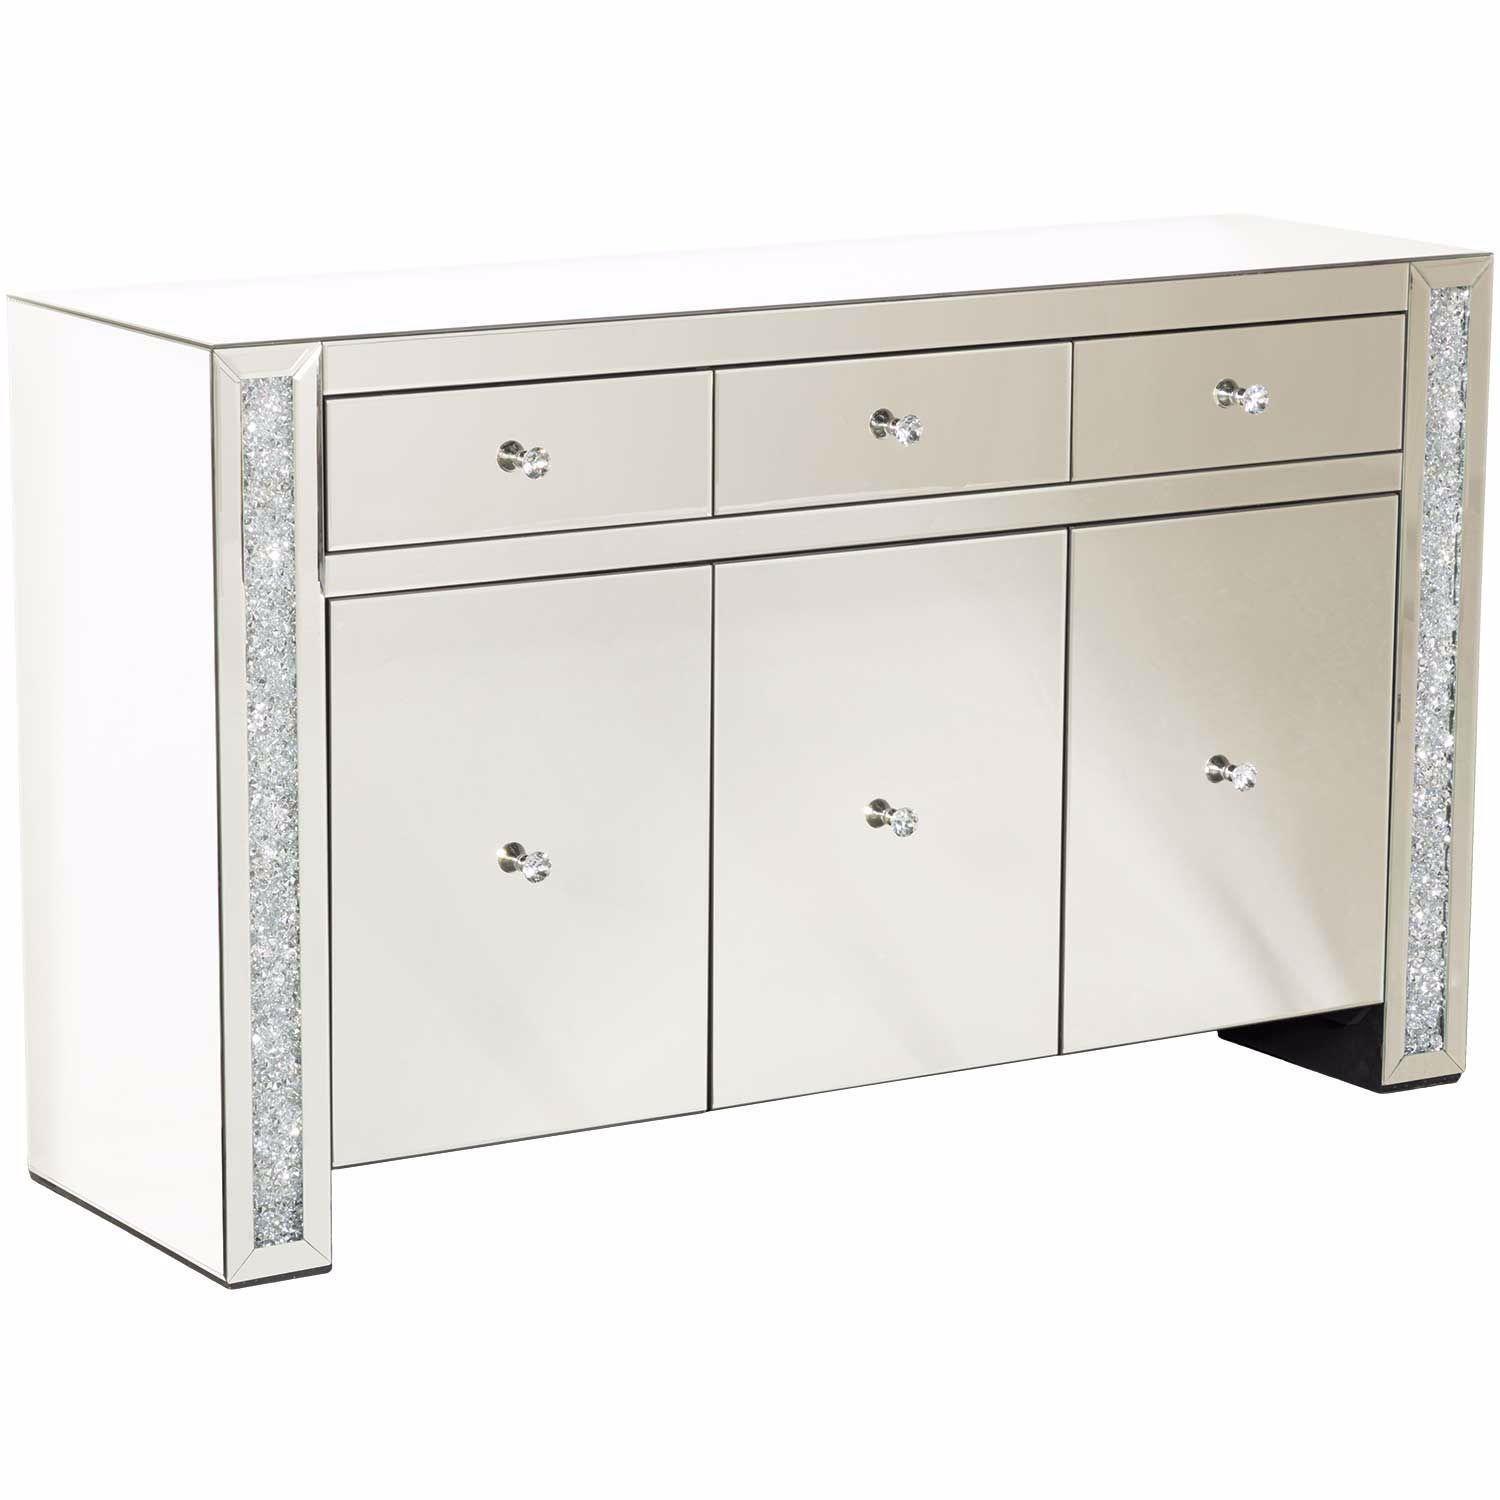 Picture of Mirrored Cabinet